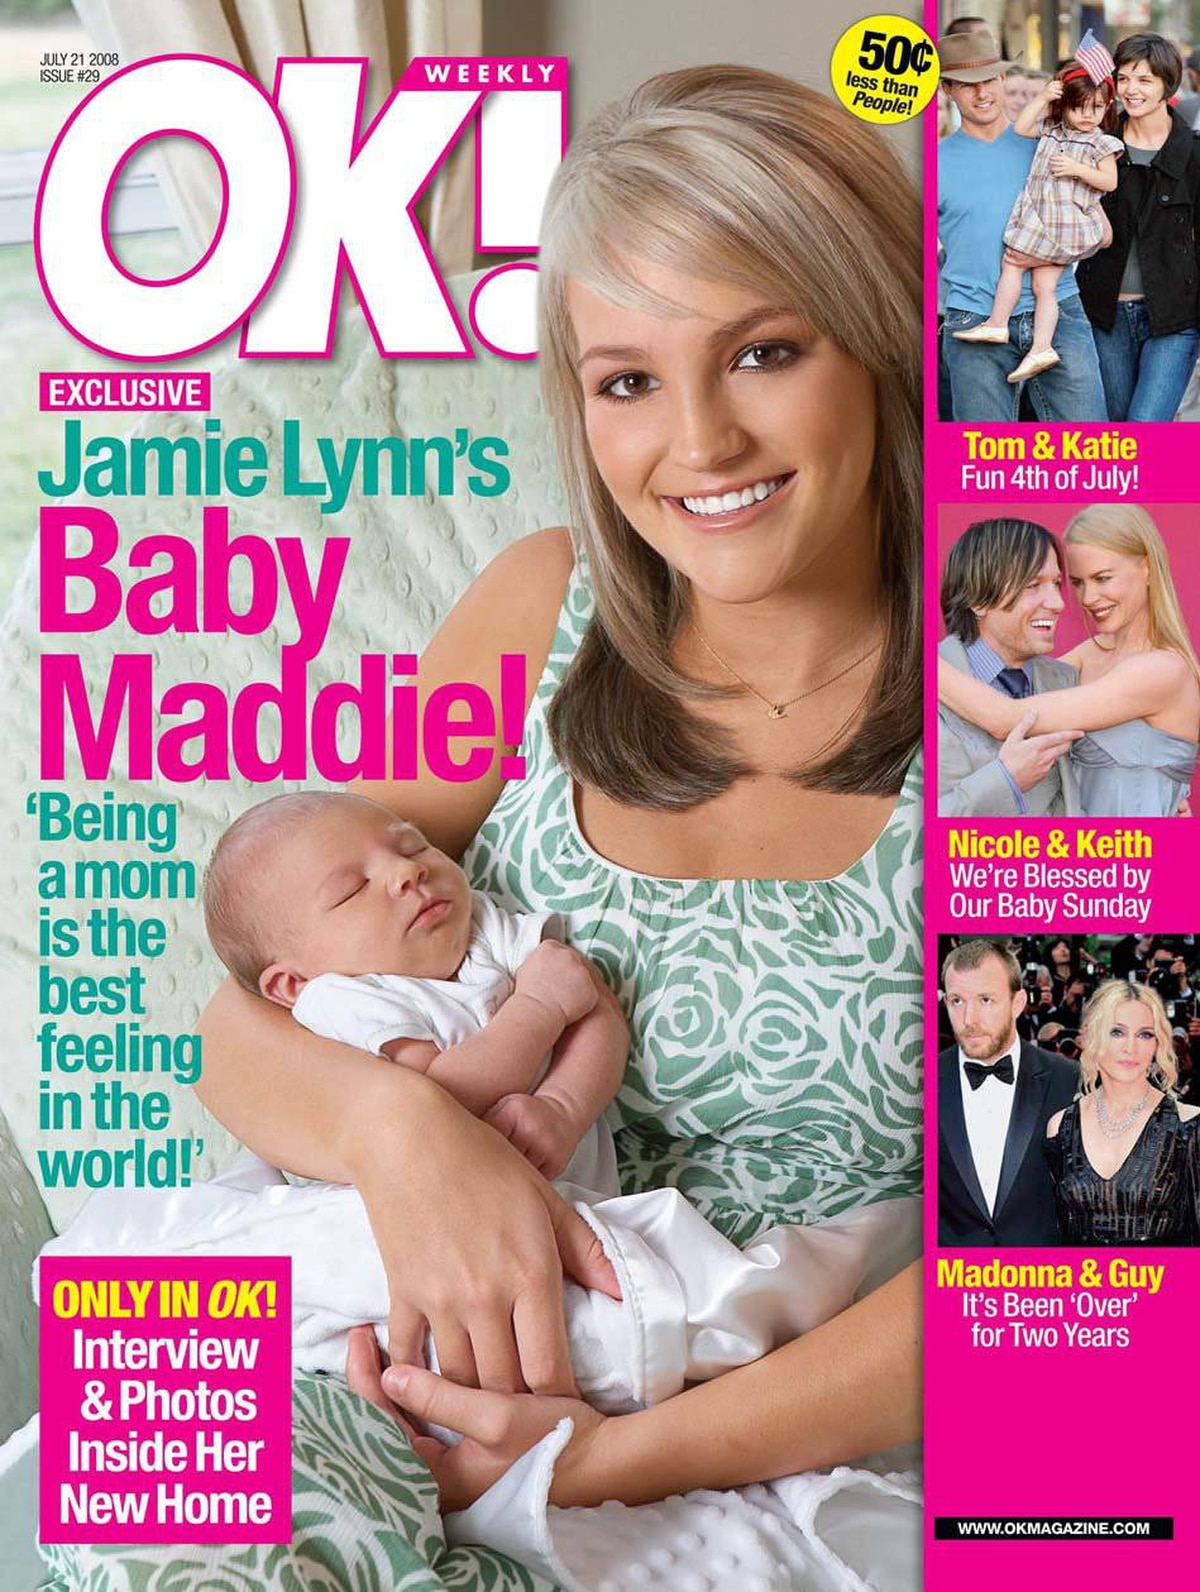 Soon, teenagers were getting into the act, such as Jamie Lynn Spears, who appeared on an August 2008 cover of OK! magazine with her daughter Maddie Briann. She was 17 at the time.